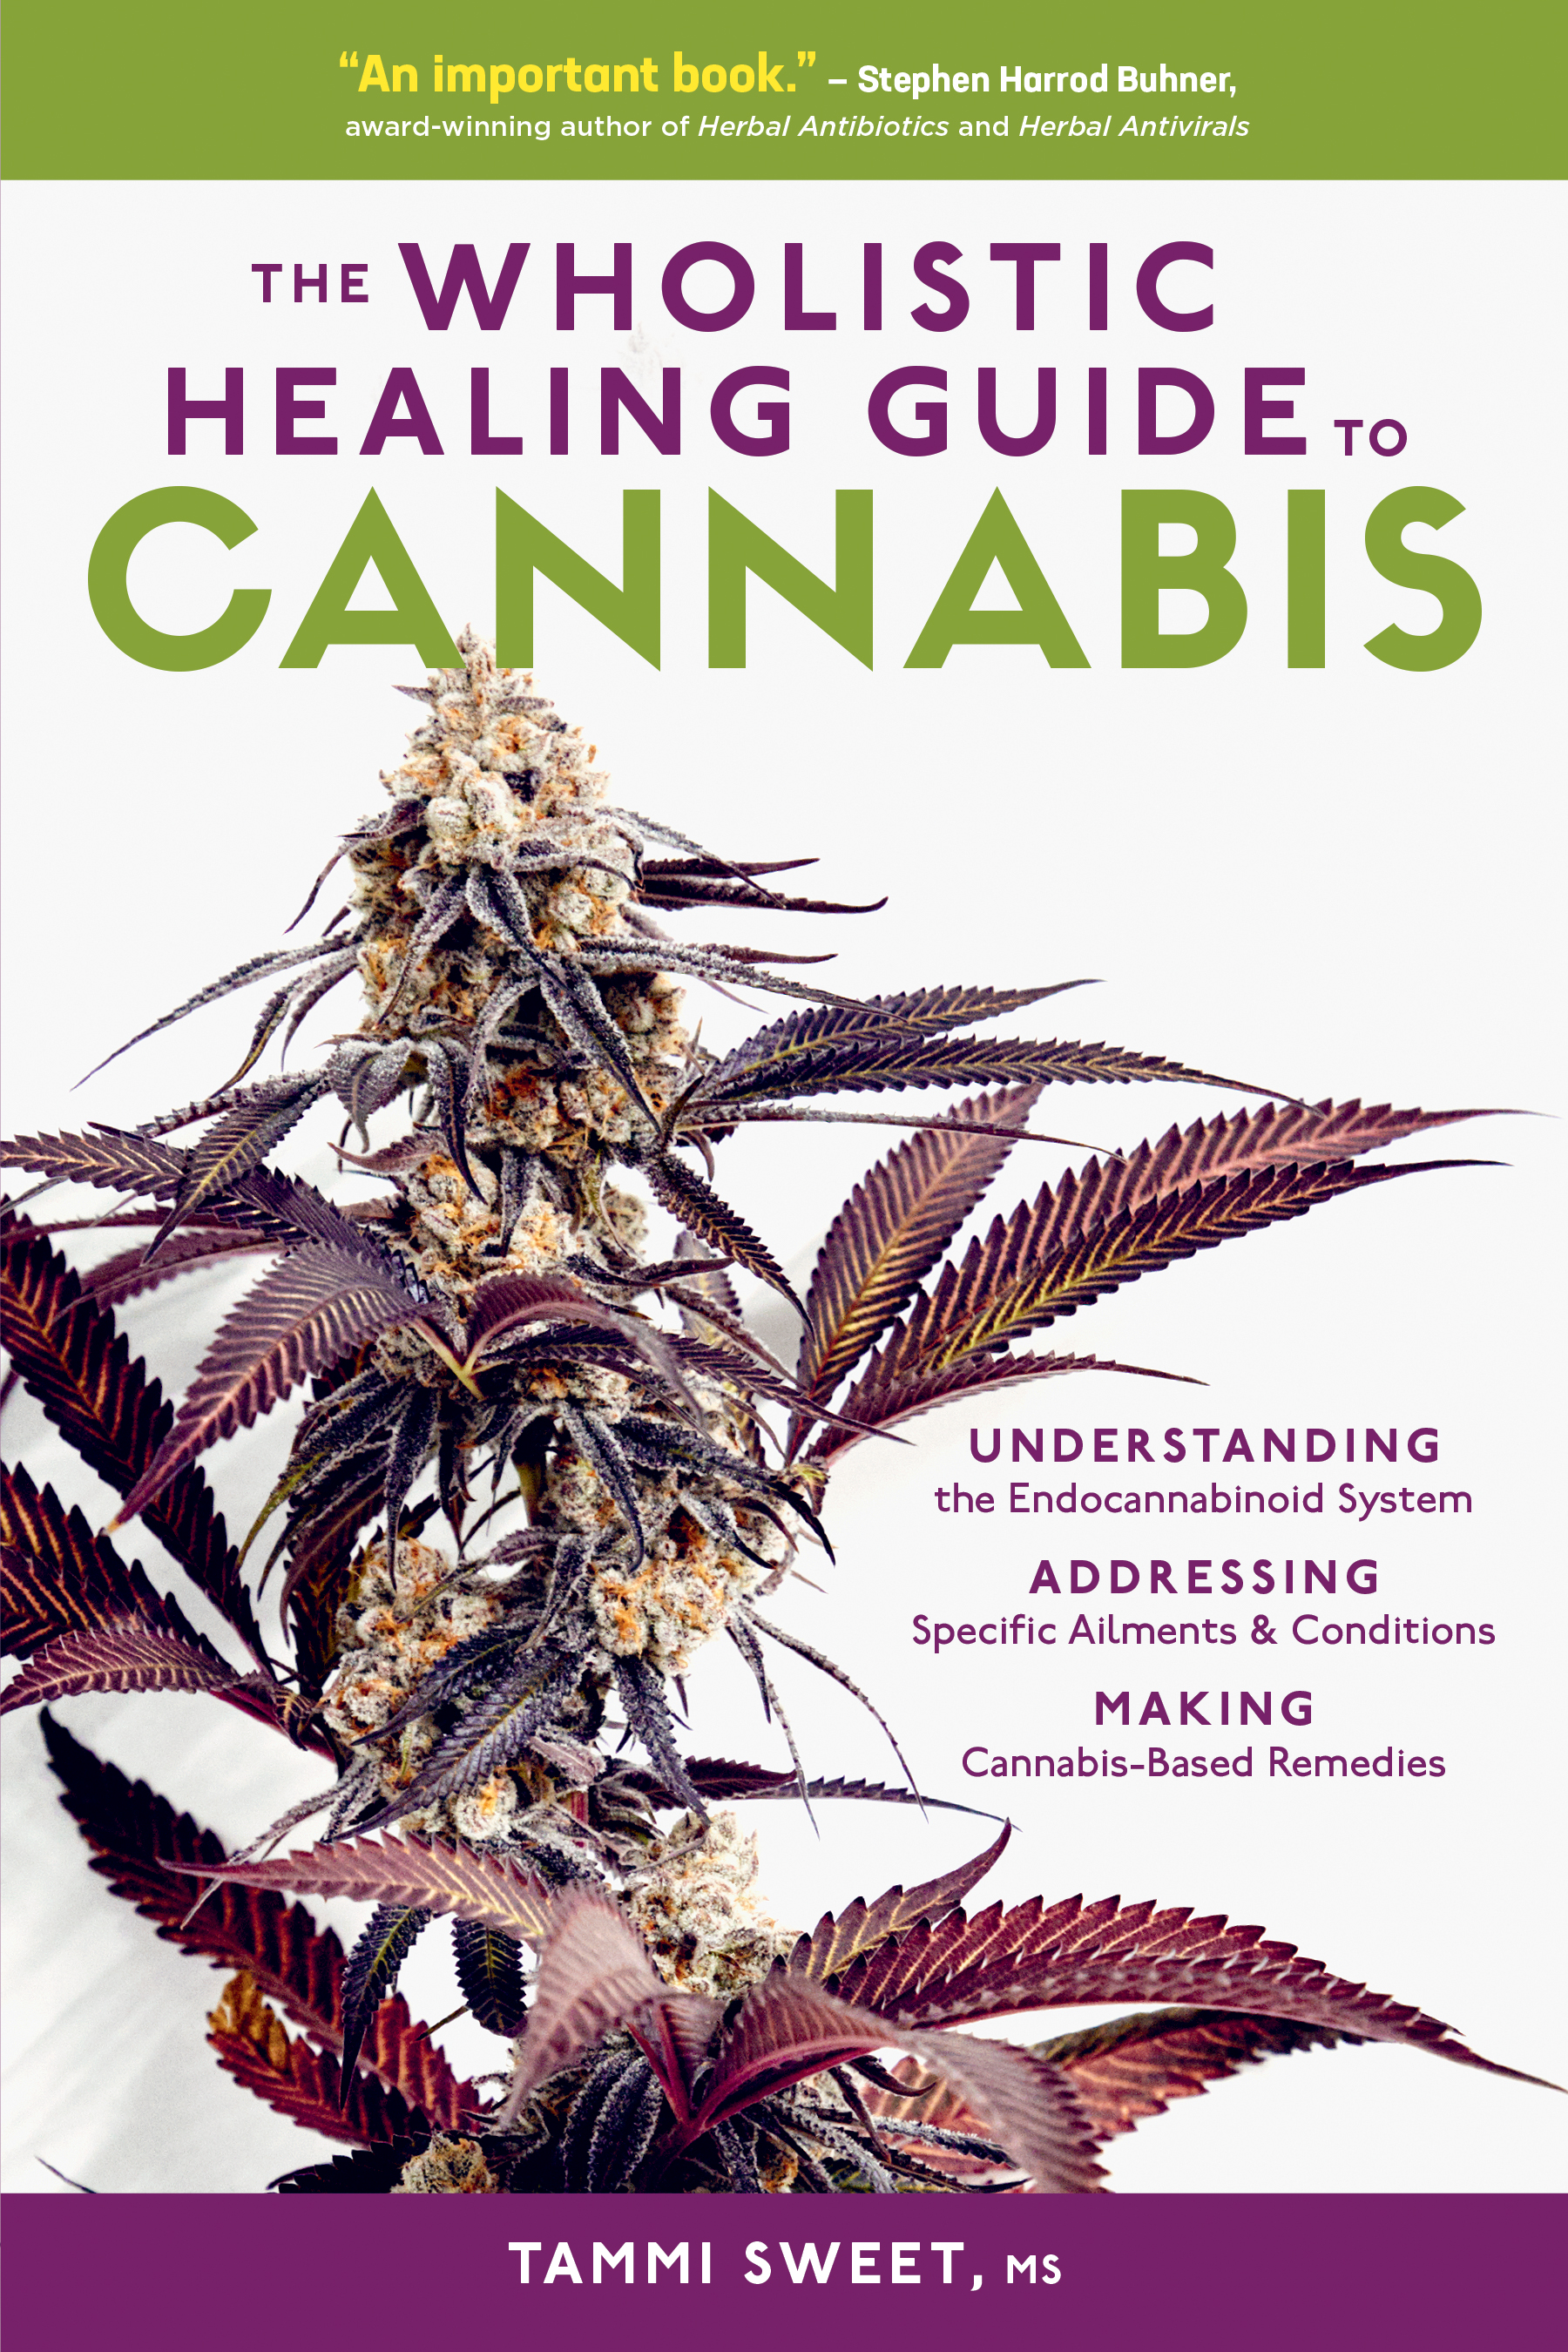 The Wholistic Healing Guide to Cannabis Understanding the Endocannabinoid System, Addressing Specific Ailments and Conditions, and Making Cannabis-Based Remedies - Tammi Sweet